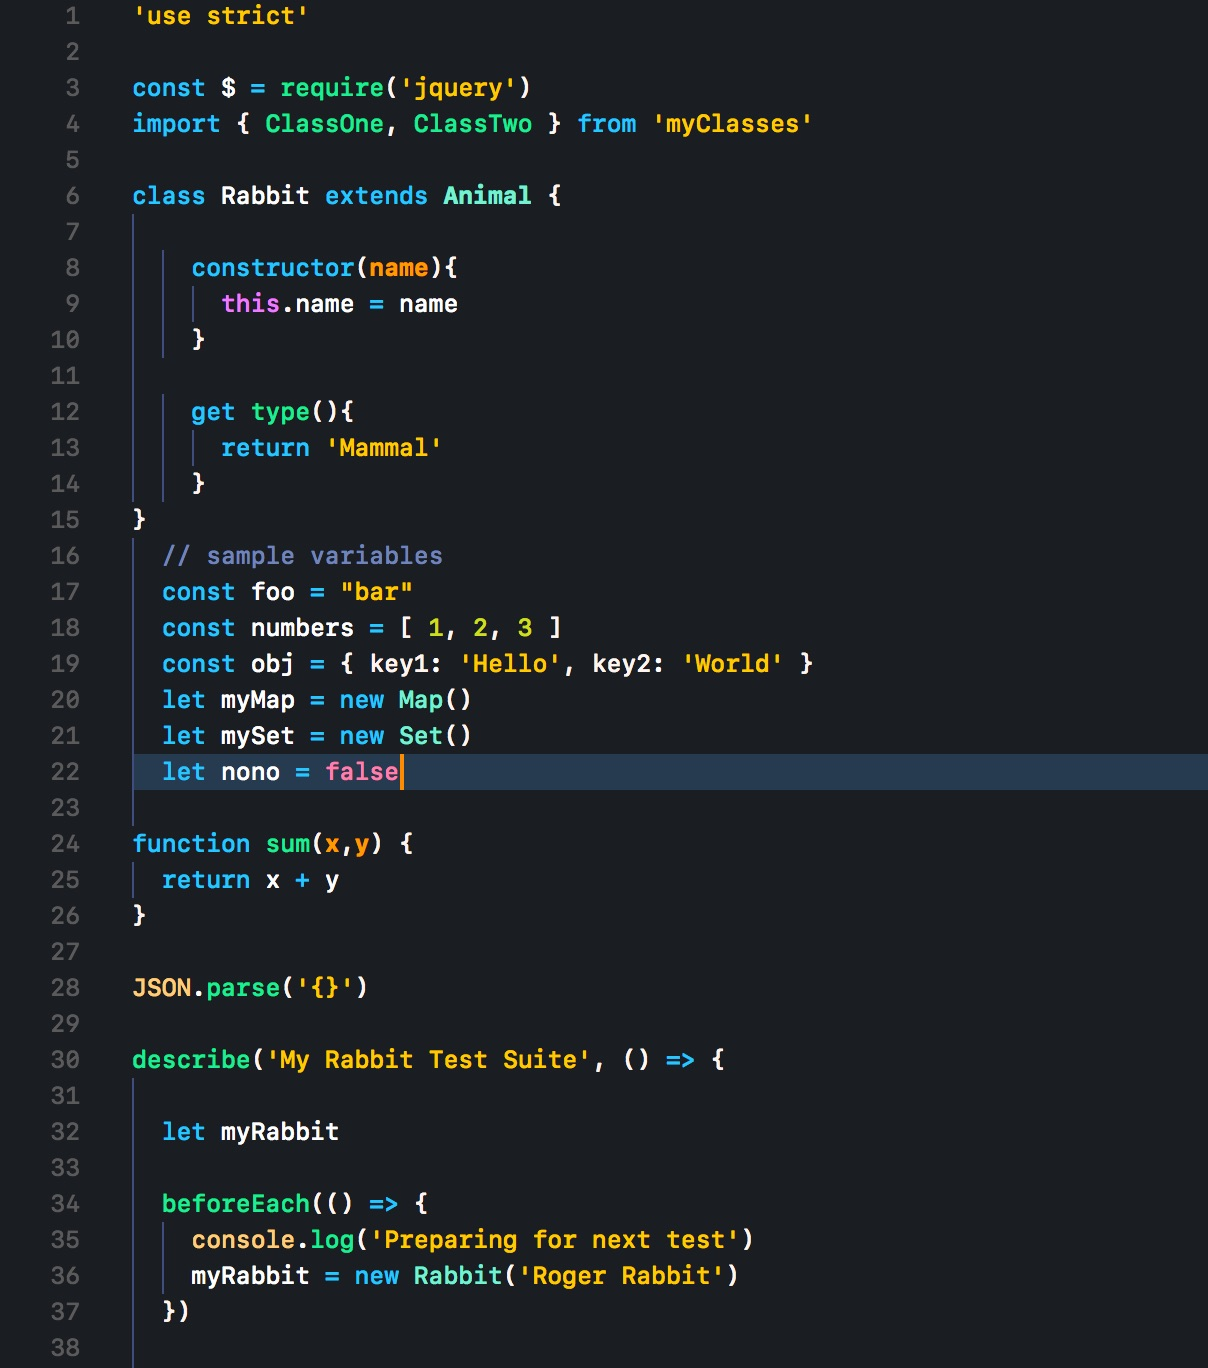 sample-code-original-js